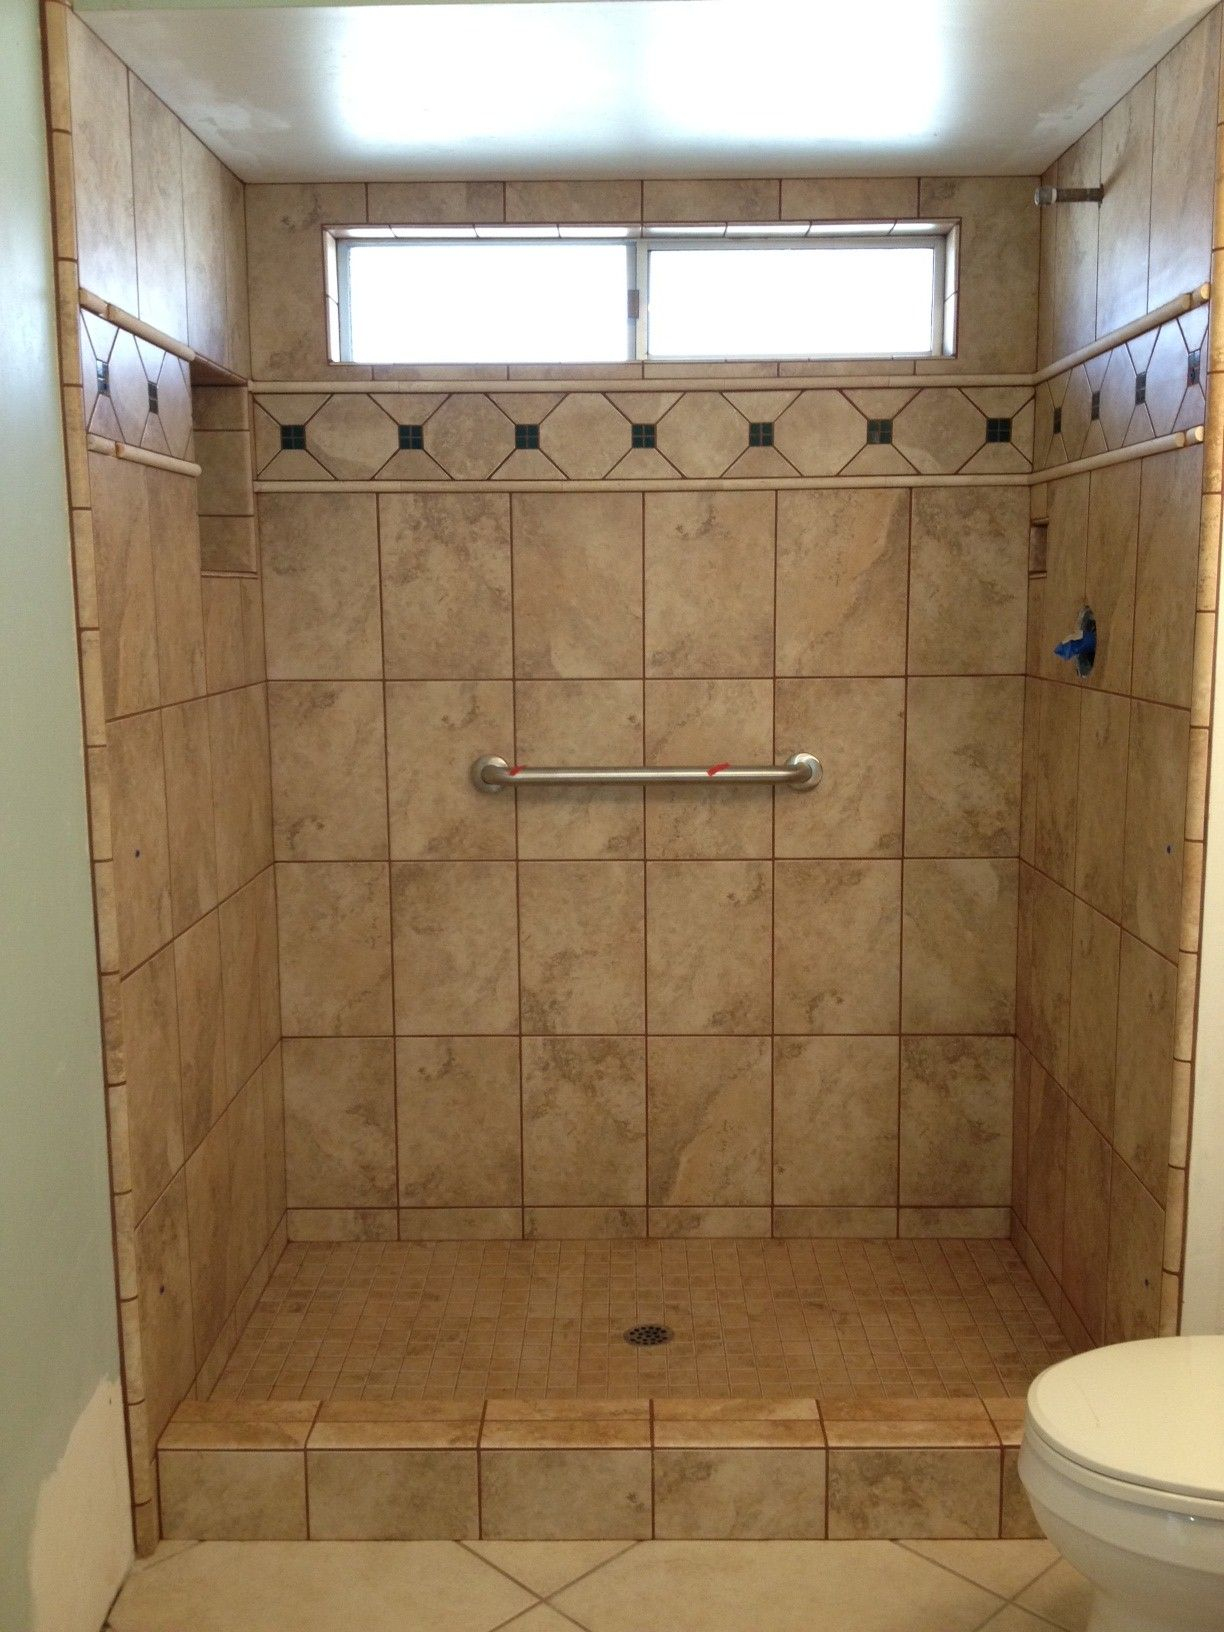 photos of tiled shower stalls Photos Gallery Custom Tile Work